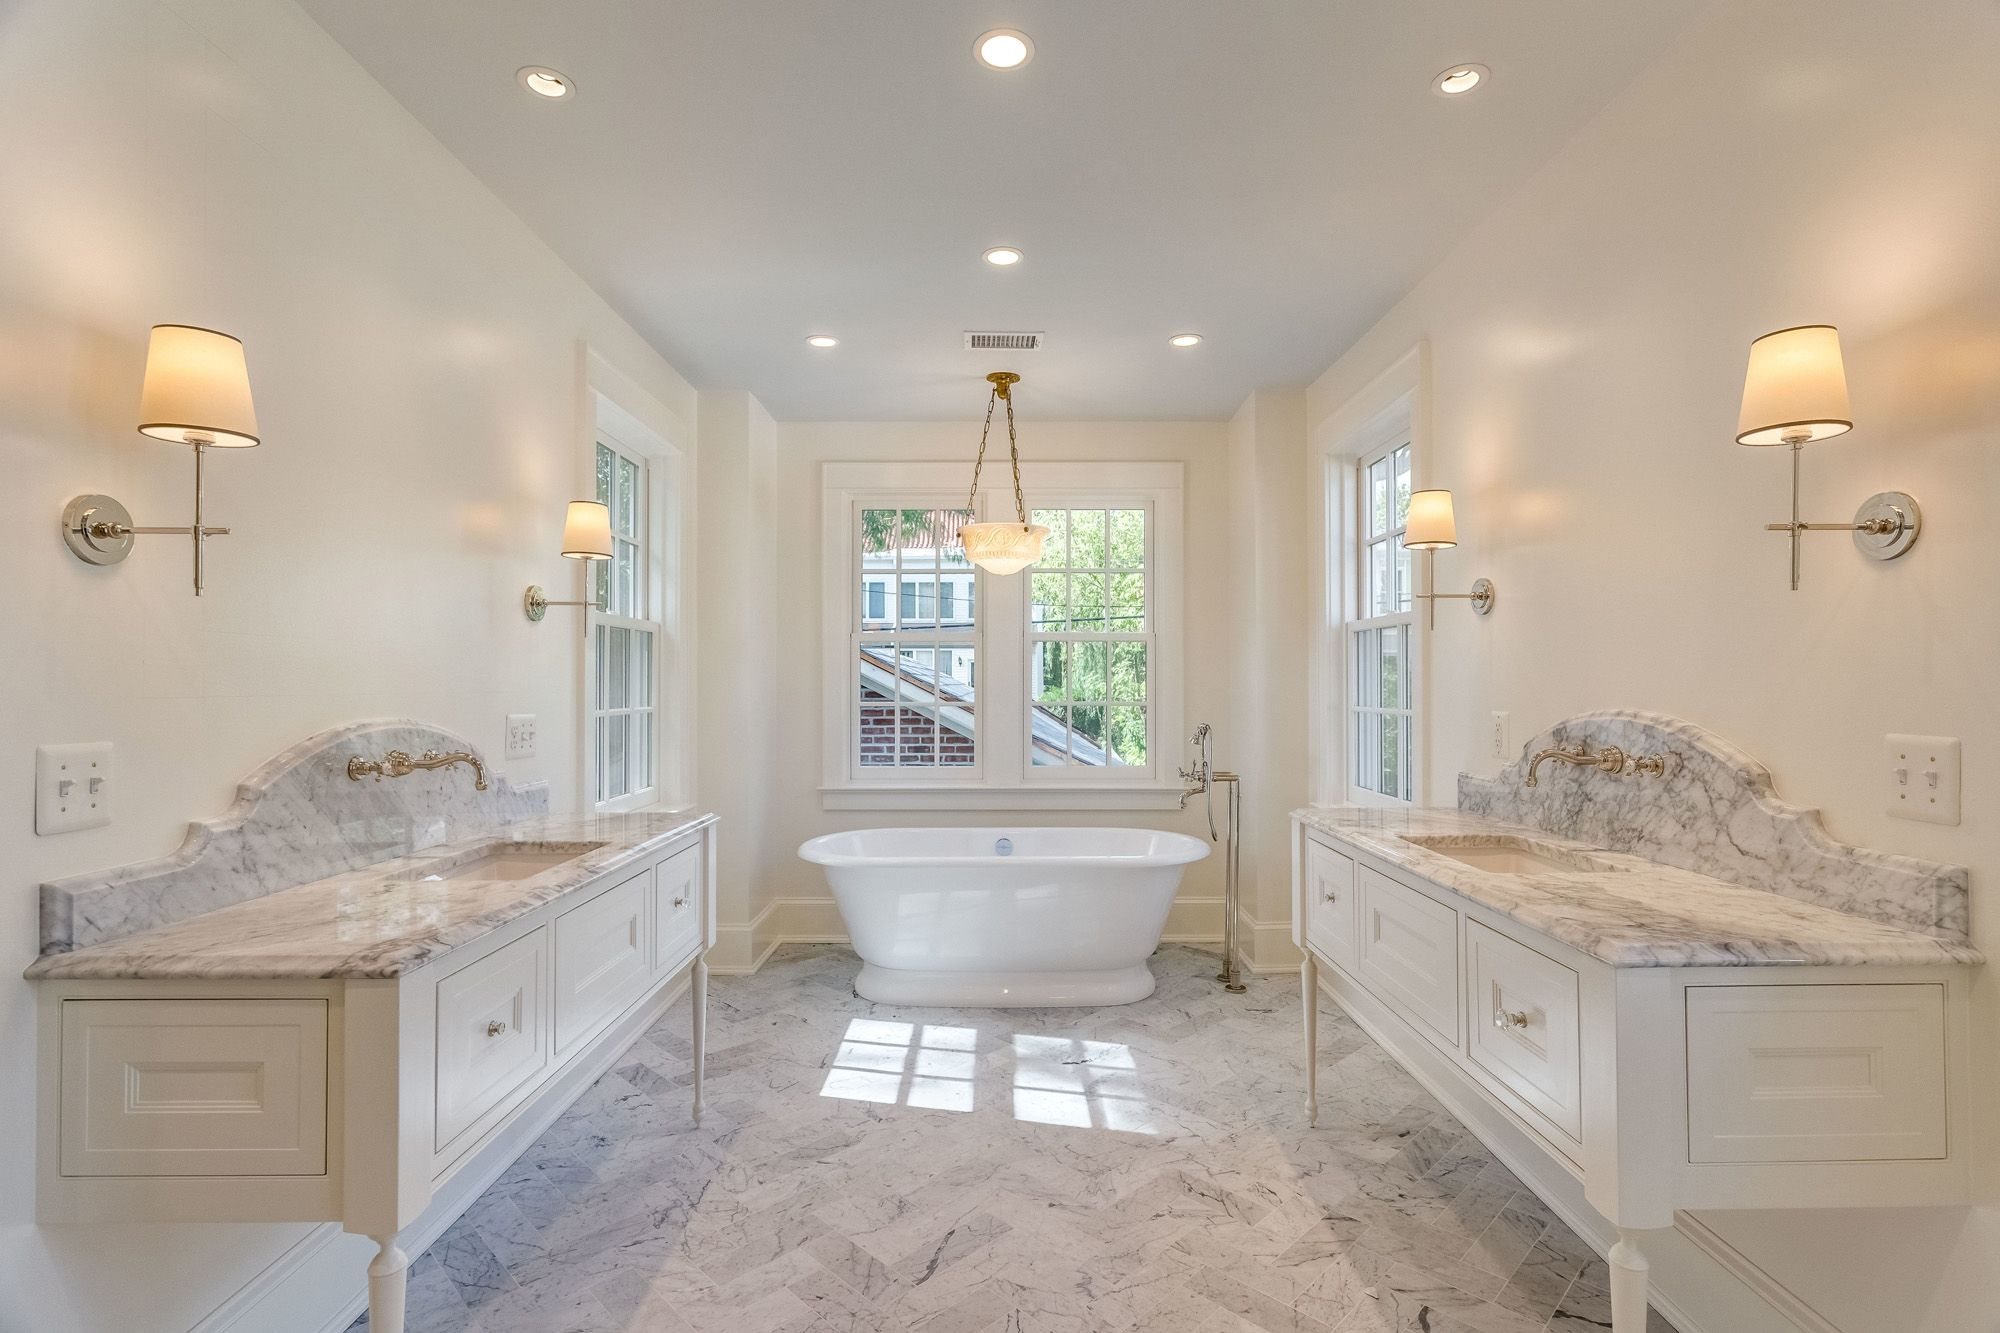 Master Baths  Bathrooms Photos Gallery  Bowa  Design Build Renovations